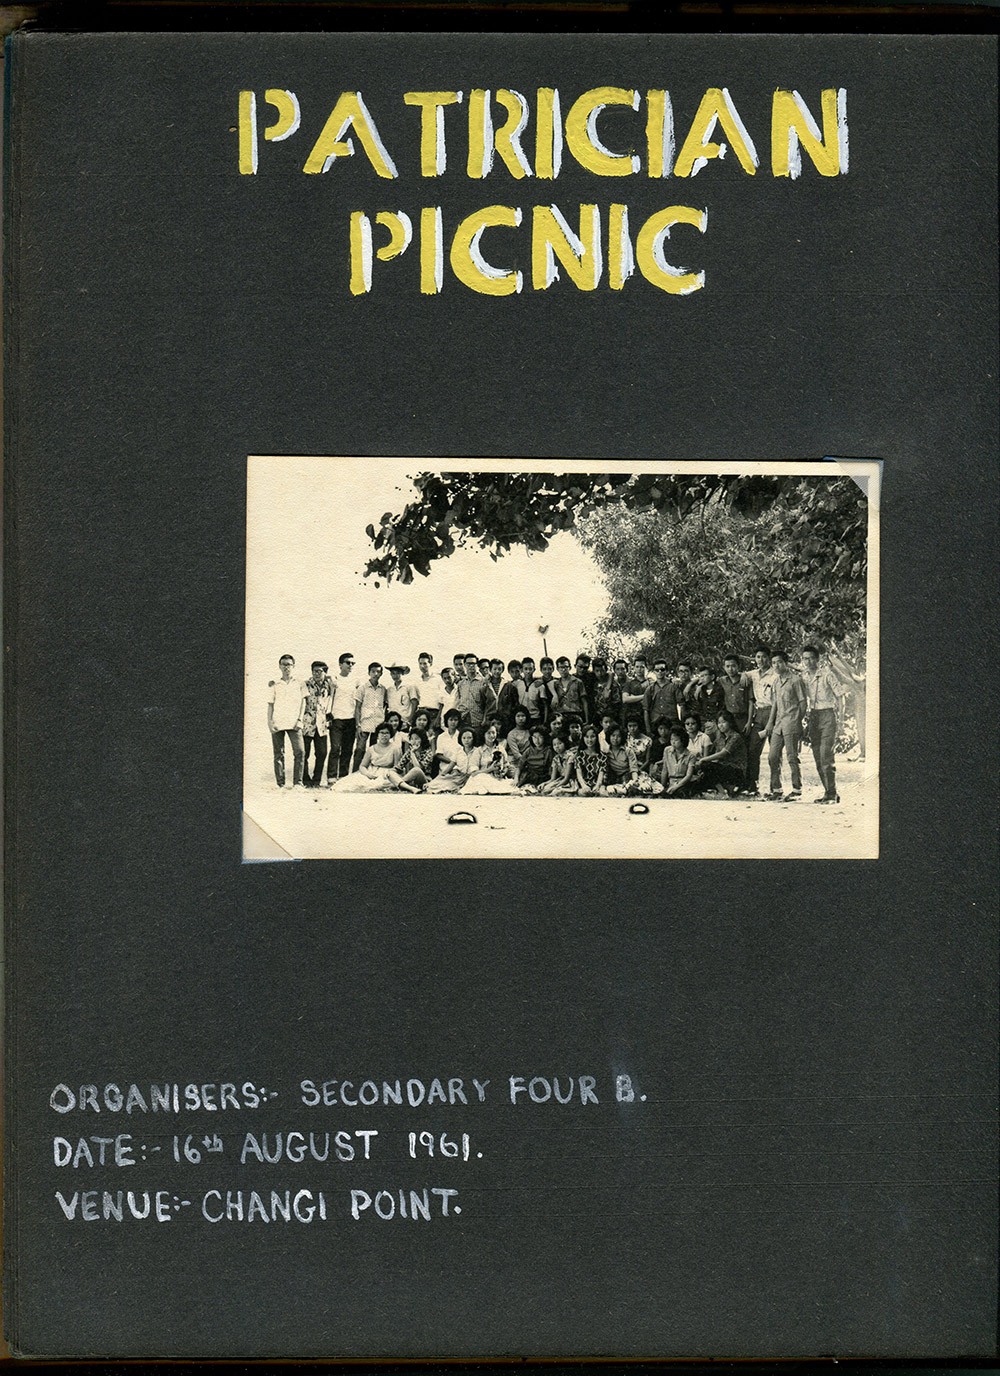 1961-Sec-4B-Pinic-at-Changi-Point074